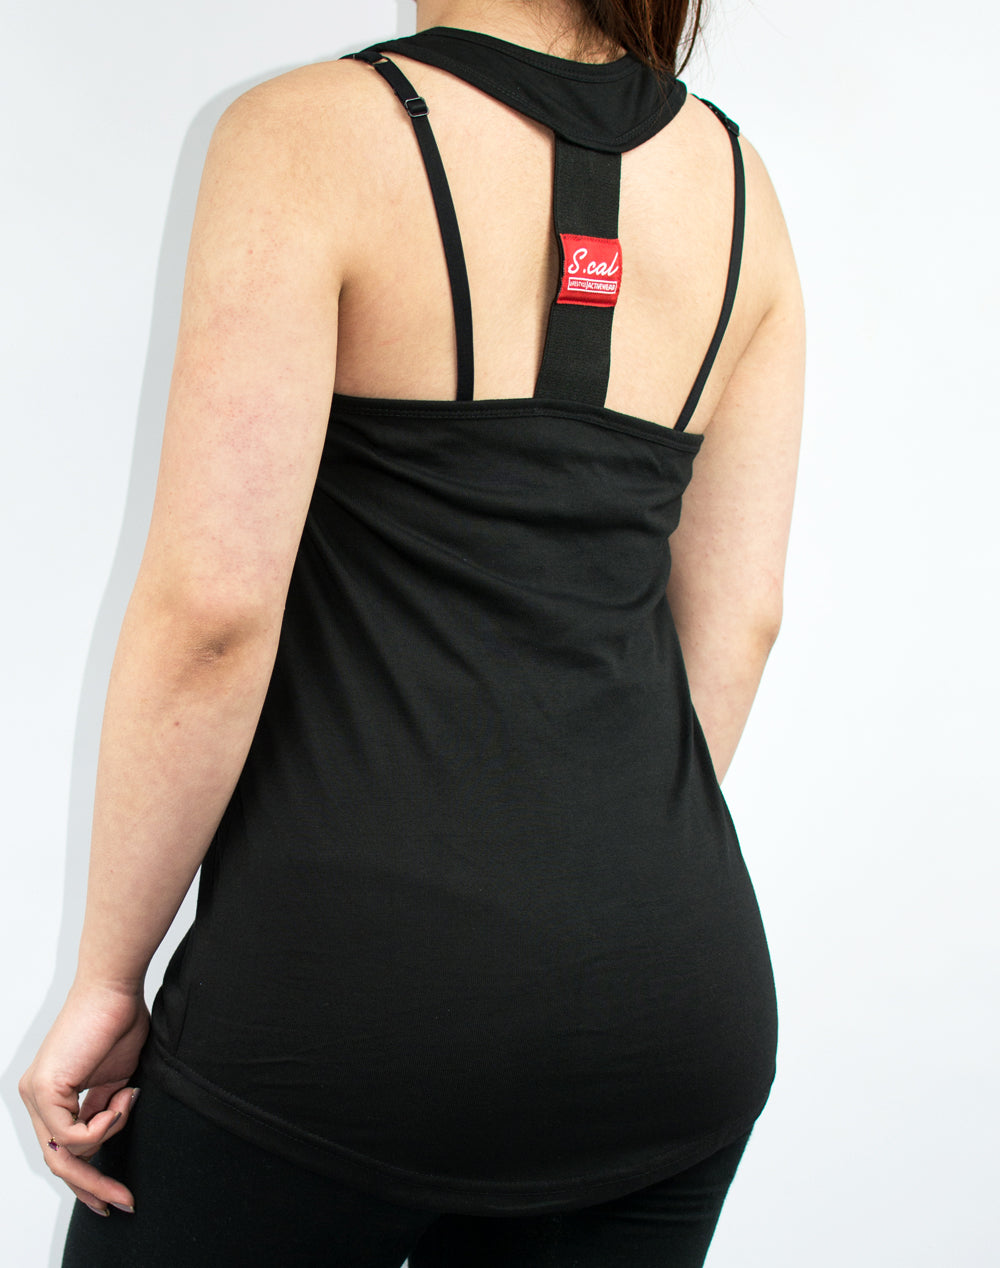 Women's Tech Tank - Black - Scal Clothing